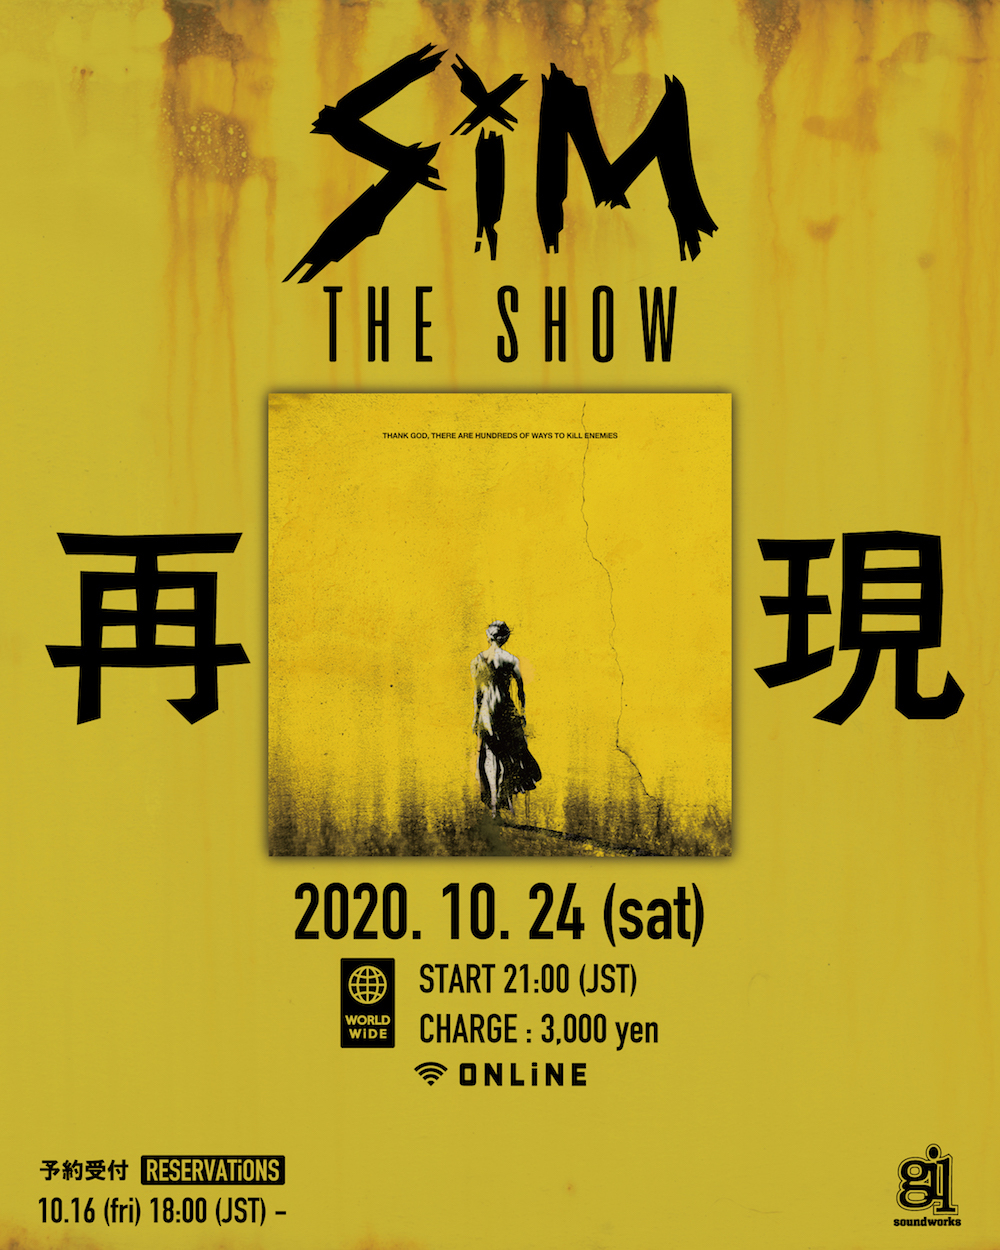 SiM THE SHOW『THANK GOD, THERE ARE HUNDREDS OF WAYS TO KiLL ENEMiES』